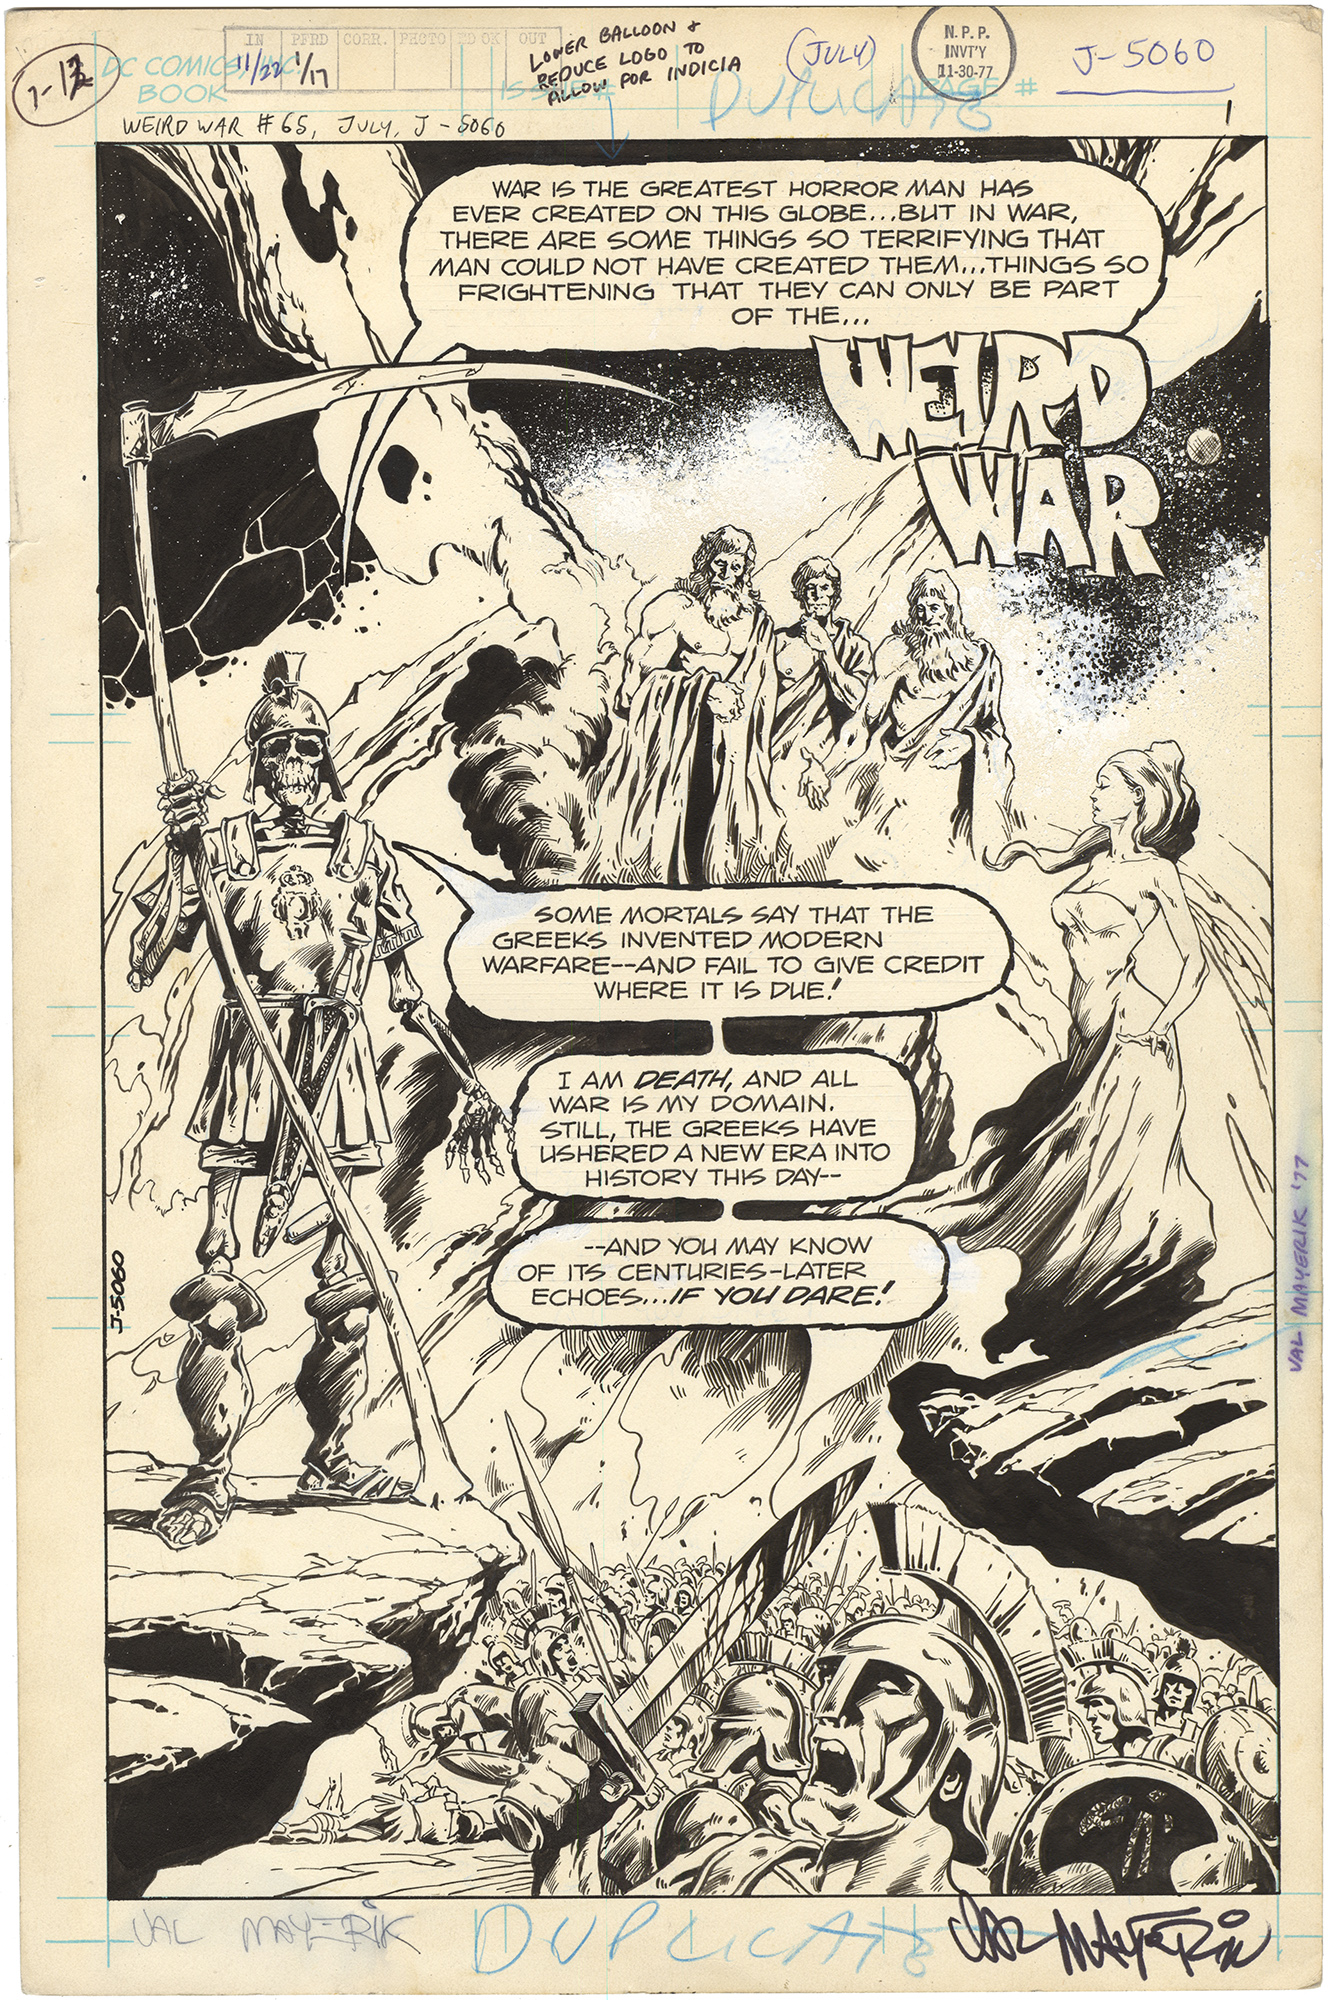 Weird War Tales #65 p1 (Signed)